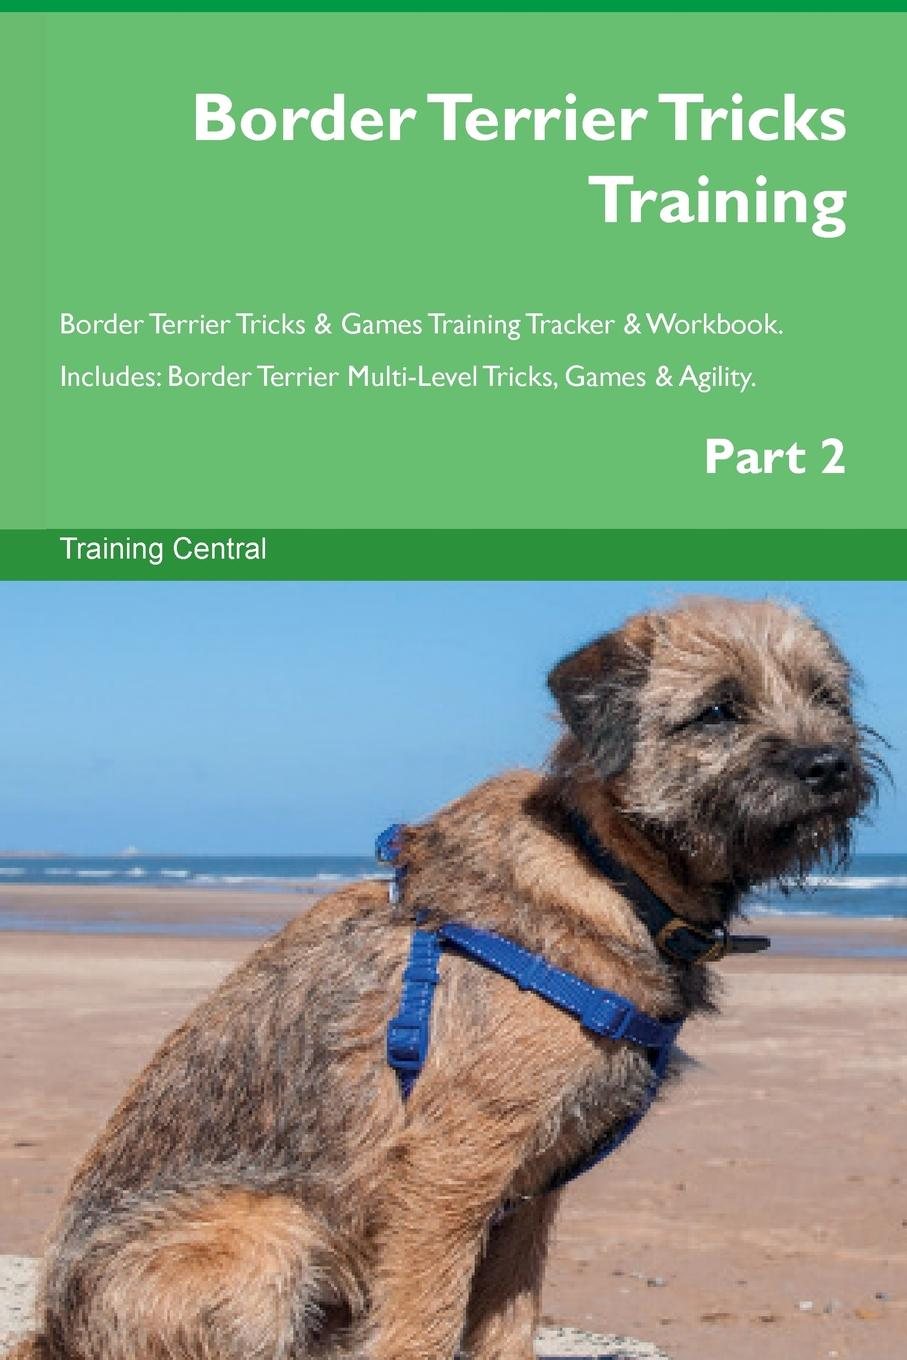 Training Central Border Terrier Tricks Training Border Terrier Tricks . Games Training Tracker . Workbook. Includes. Border Terrier Multi-Level Tricks, Games . Agility. Part 2 this book loves you